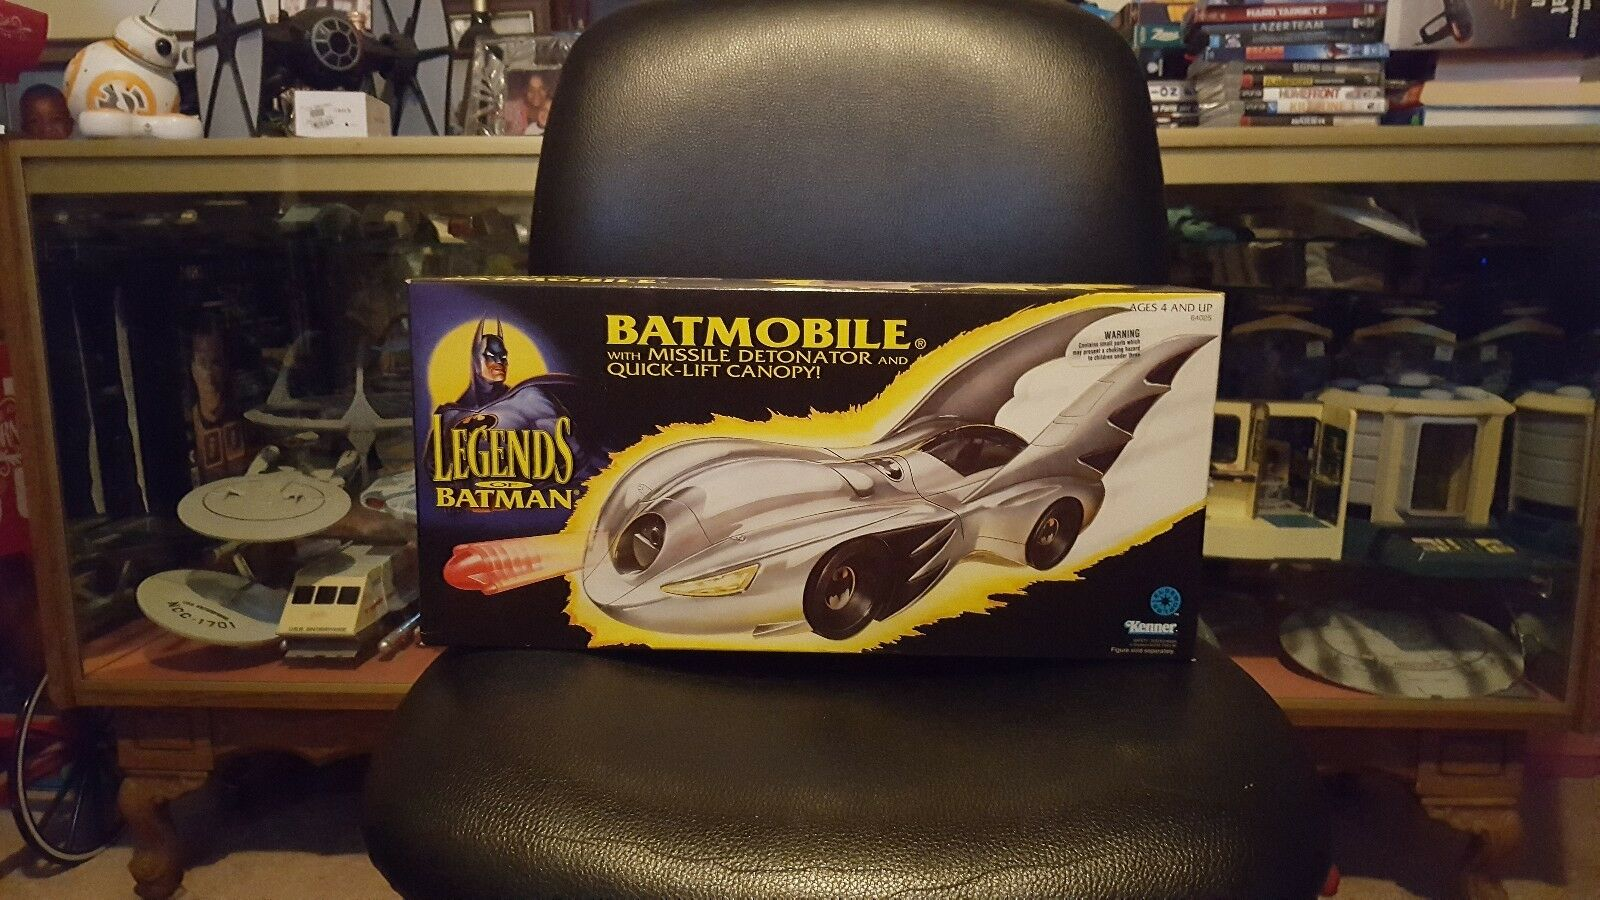 1994 Legends of Batman Batmobile w Missile Detonator Kenner brand new in box